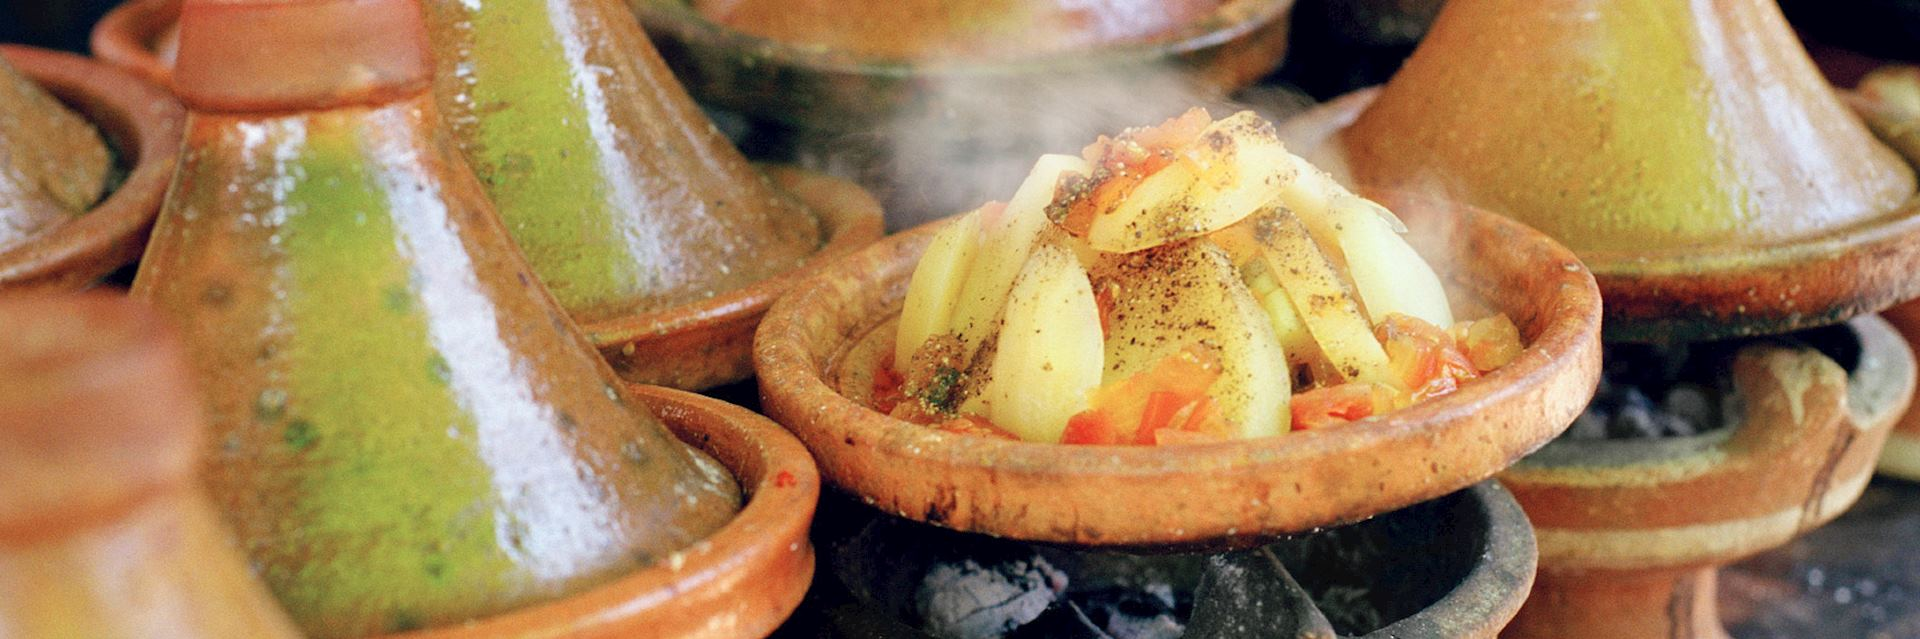 Cooking with tagines in Morocco